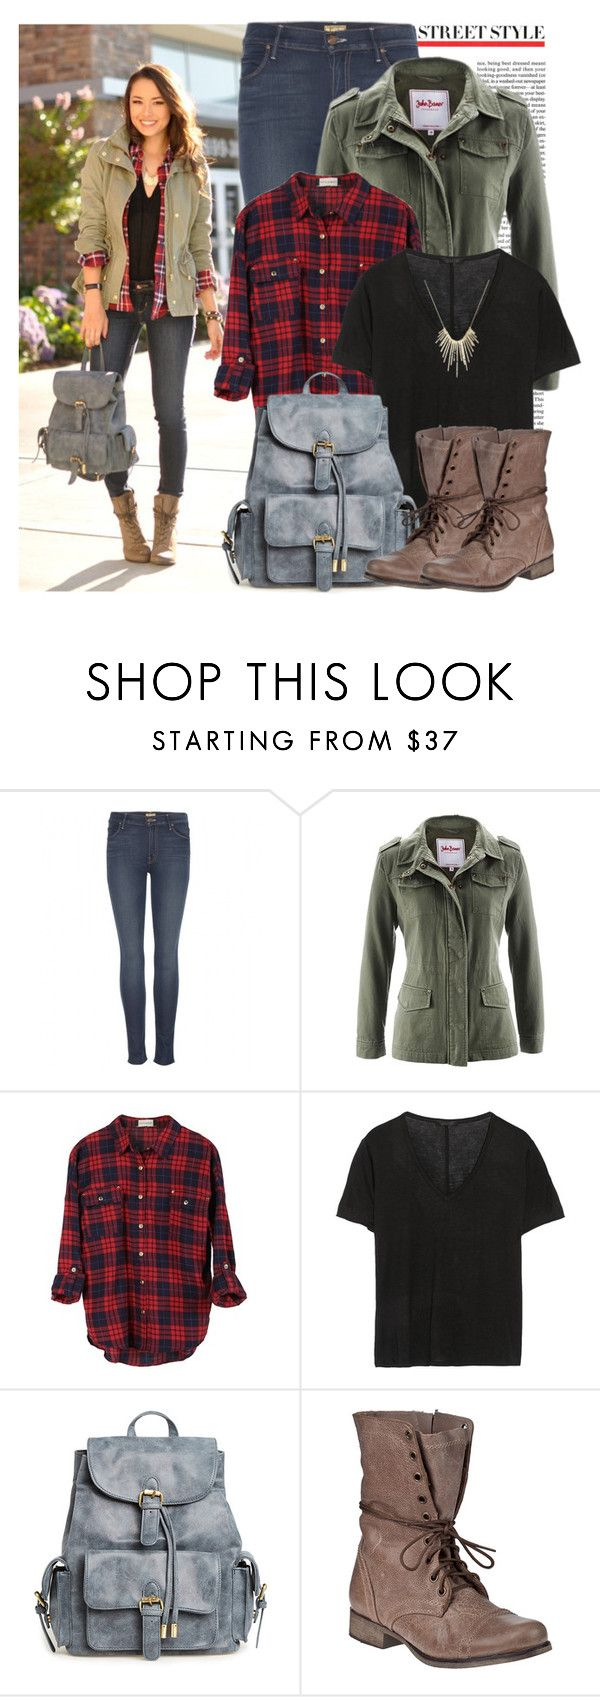 """""""Street Style: Military Jacket"""" by prettyorchid22 ❤ liked on Polyvore featuring Mother, The Row, Steve Madden and SELECTED"""